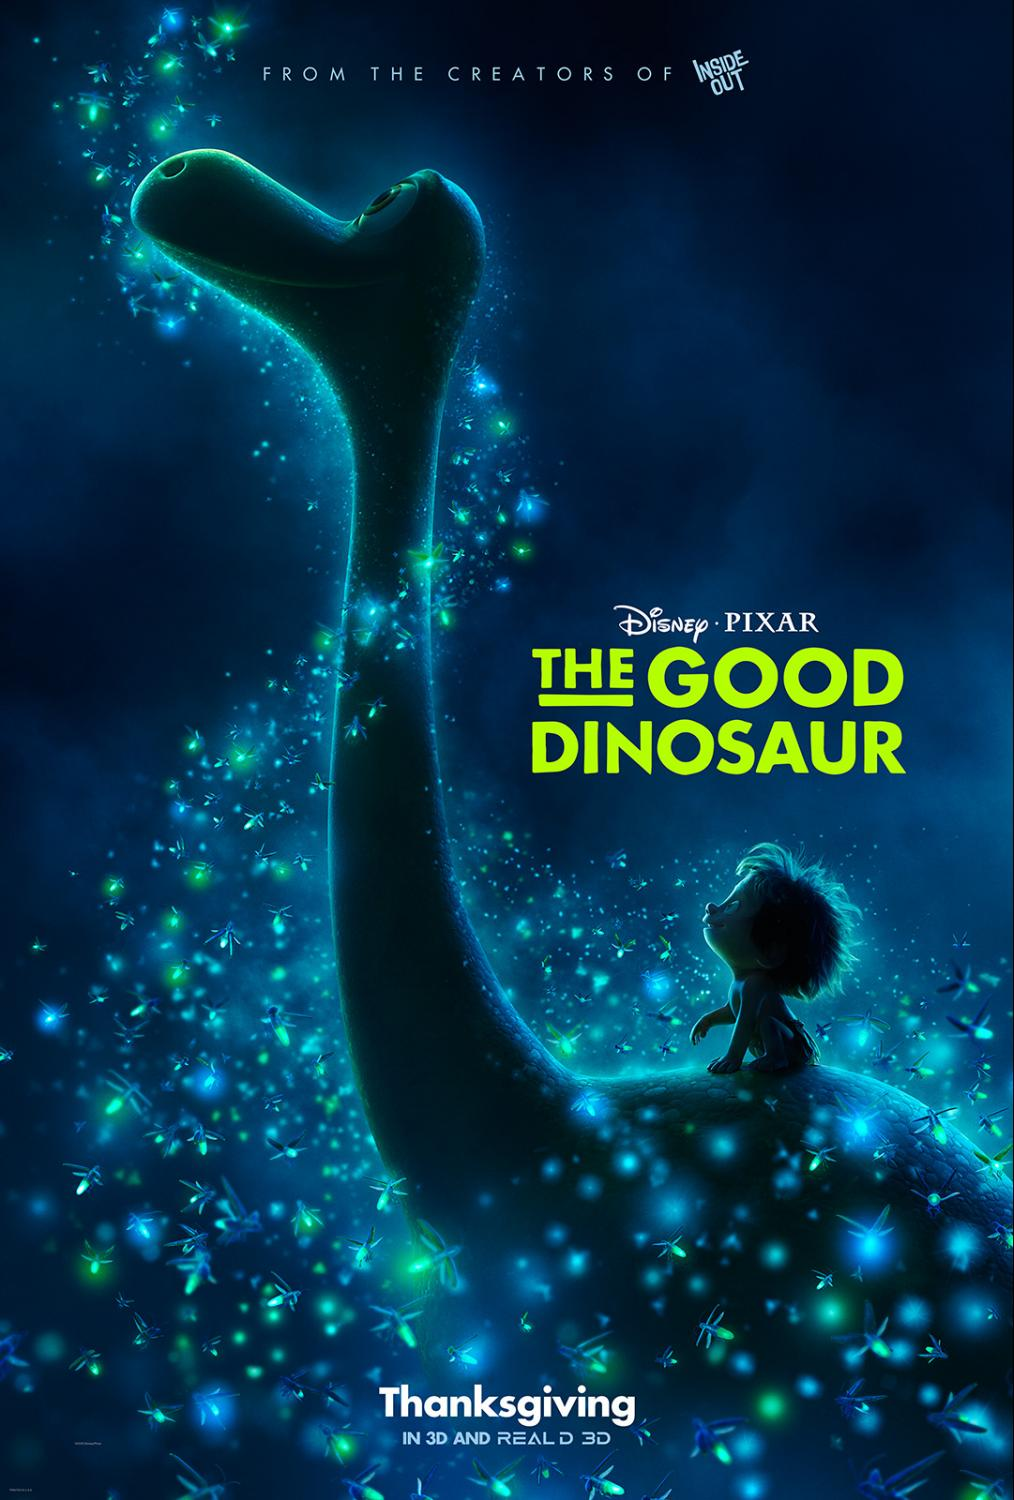 The Good Dinosaur #Disney #Pixar #GoodDino